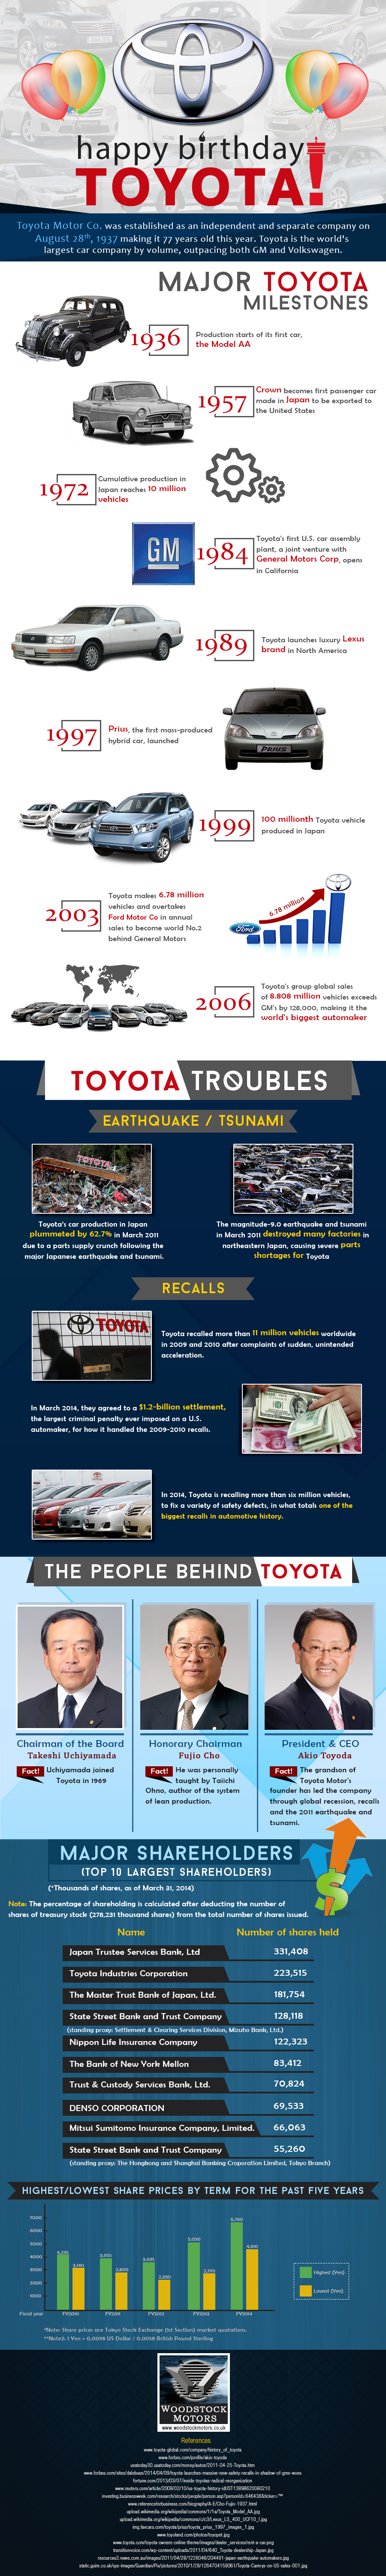 From http://www.woodstockmotors.co.uk/blog/happy-birthday-toyota-an-infographic/